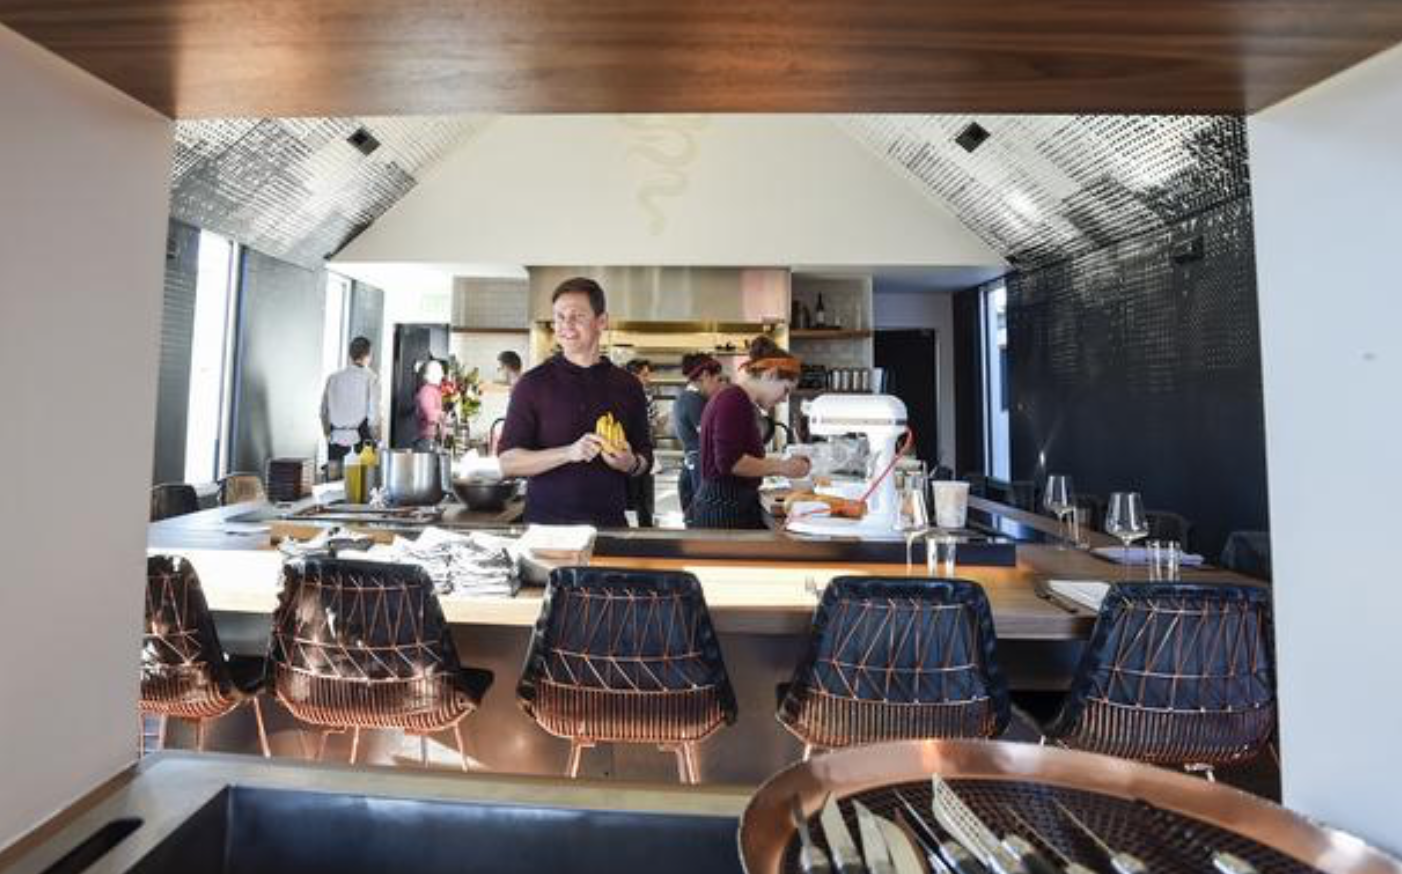 DBJ | New restaurant Beckon aims to be a 'different dinner party' every night - As a follow-up to nationally lauded Call, owner Craig Lieberman offers a concept that is more ambitious.